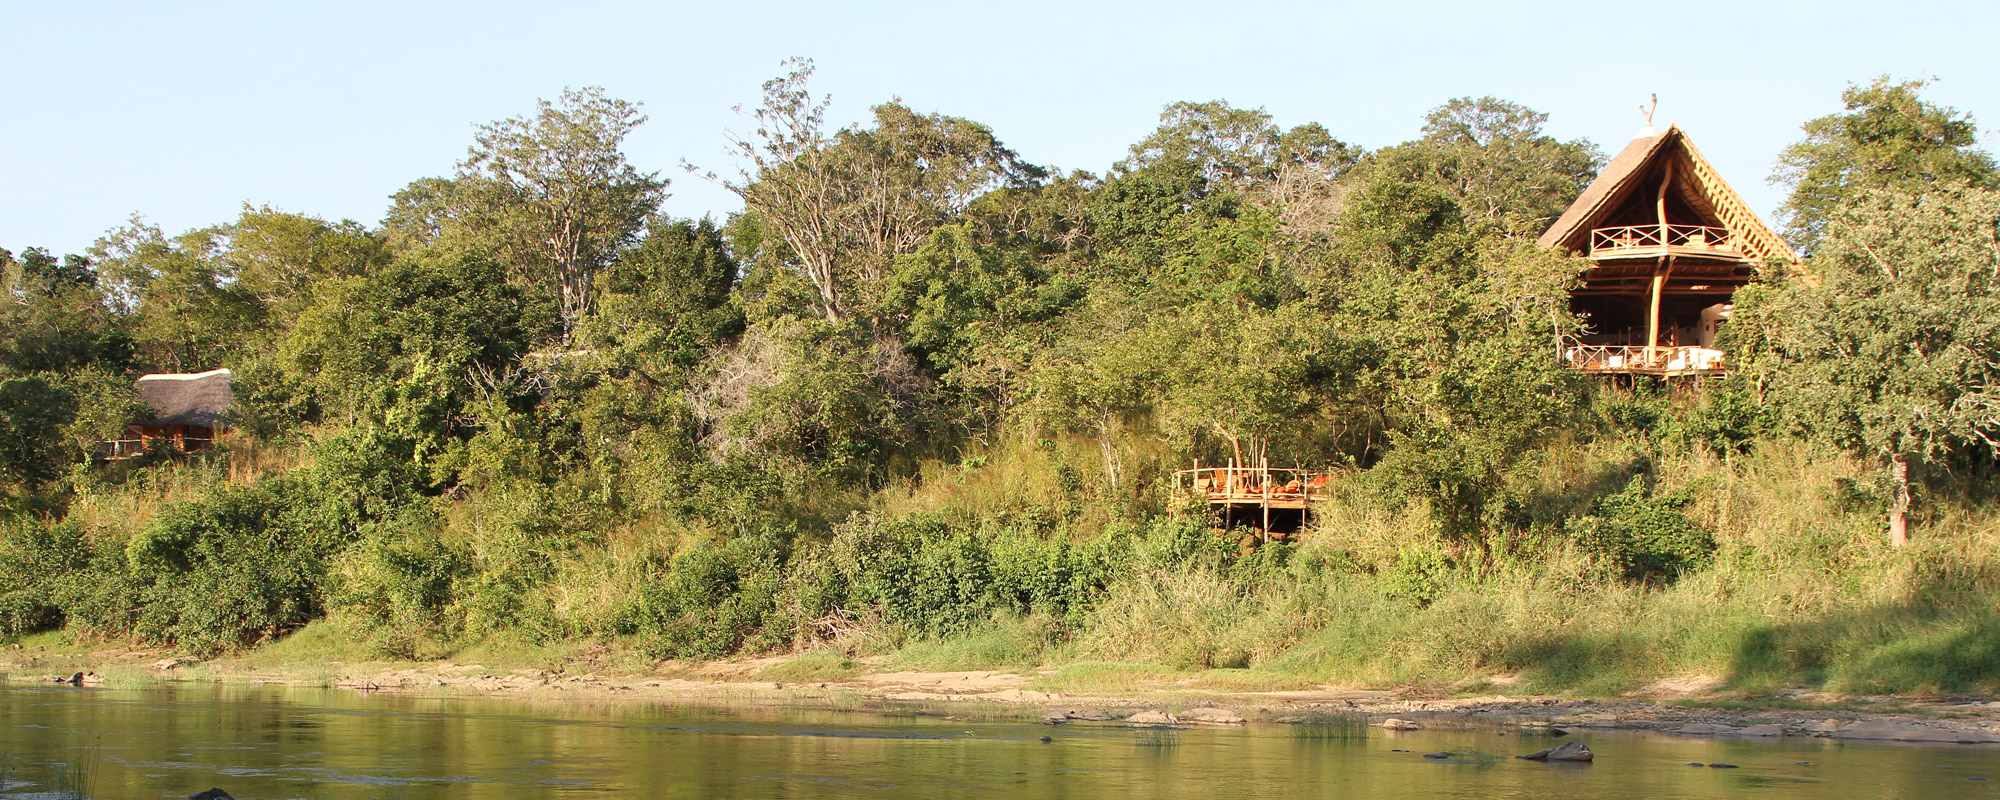 Tongole Wilderness Lodge - African Safari